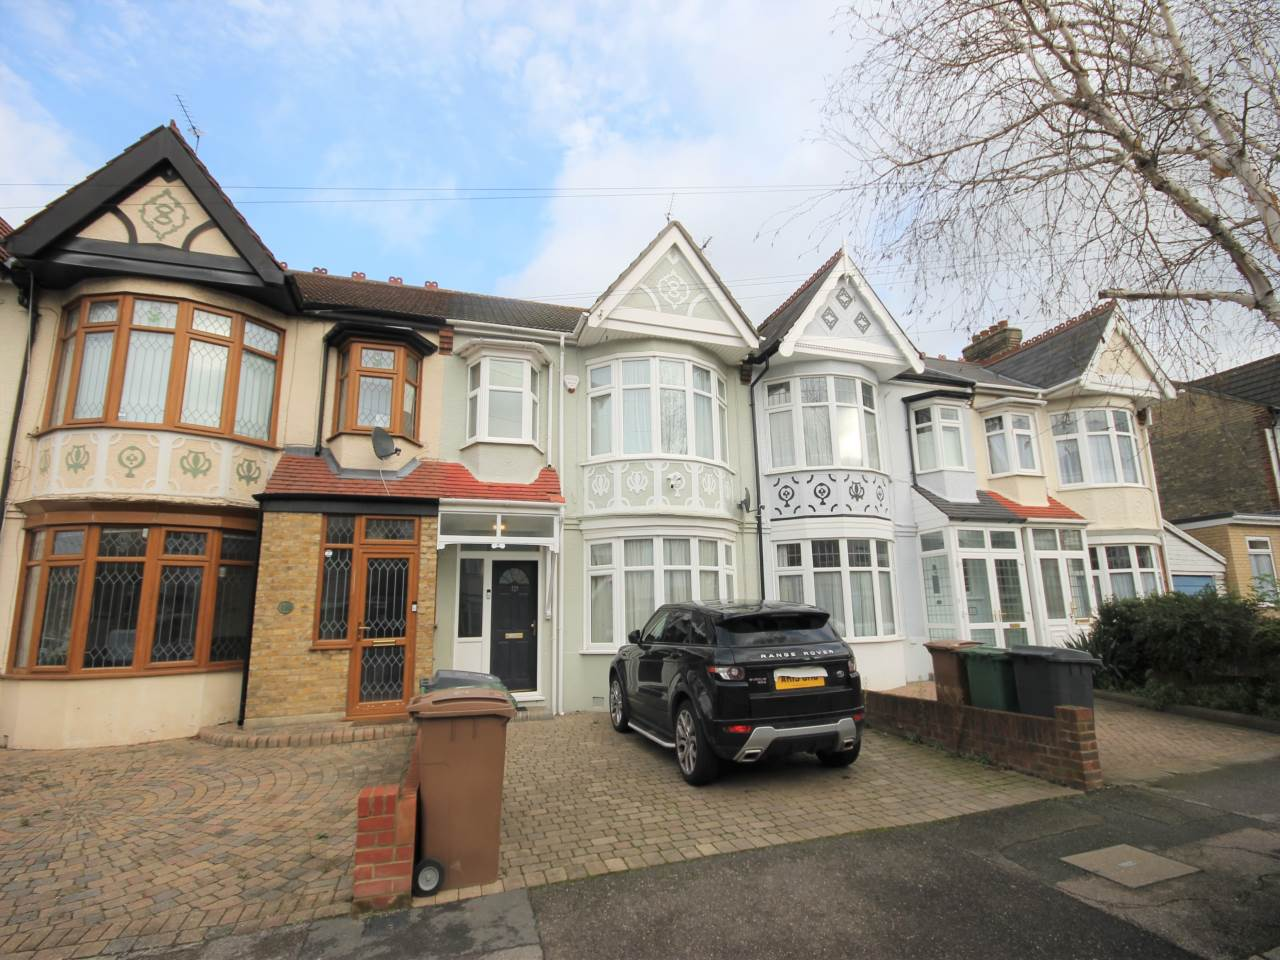 4 bed house to rent in Highams Park, E4